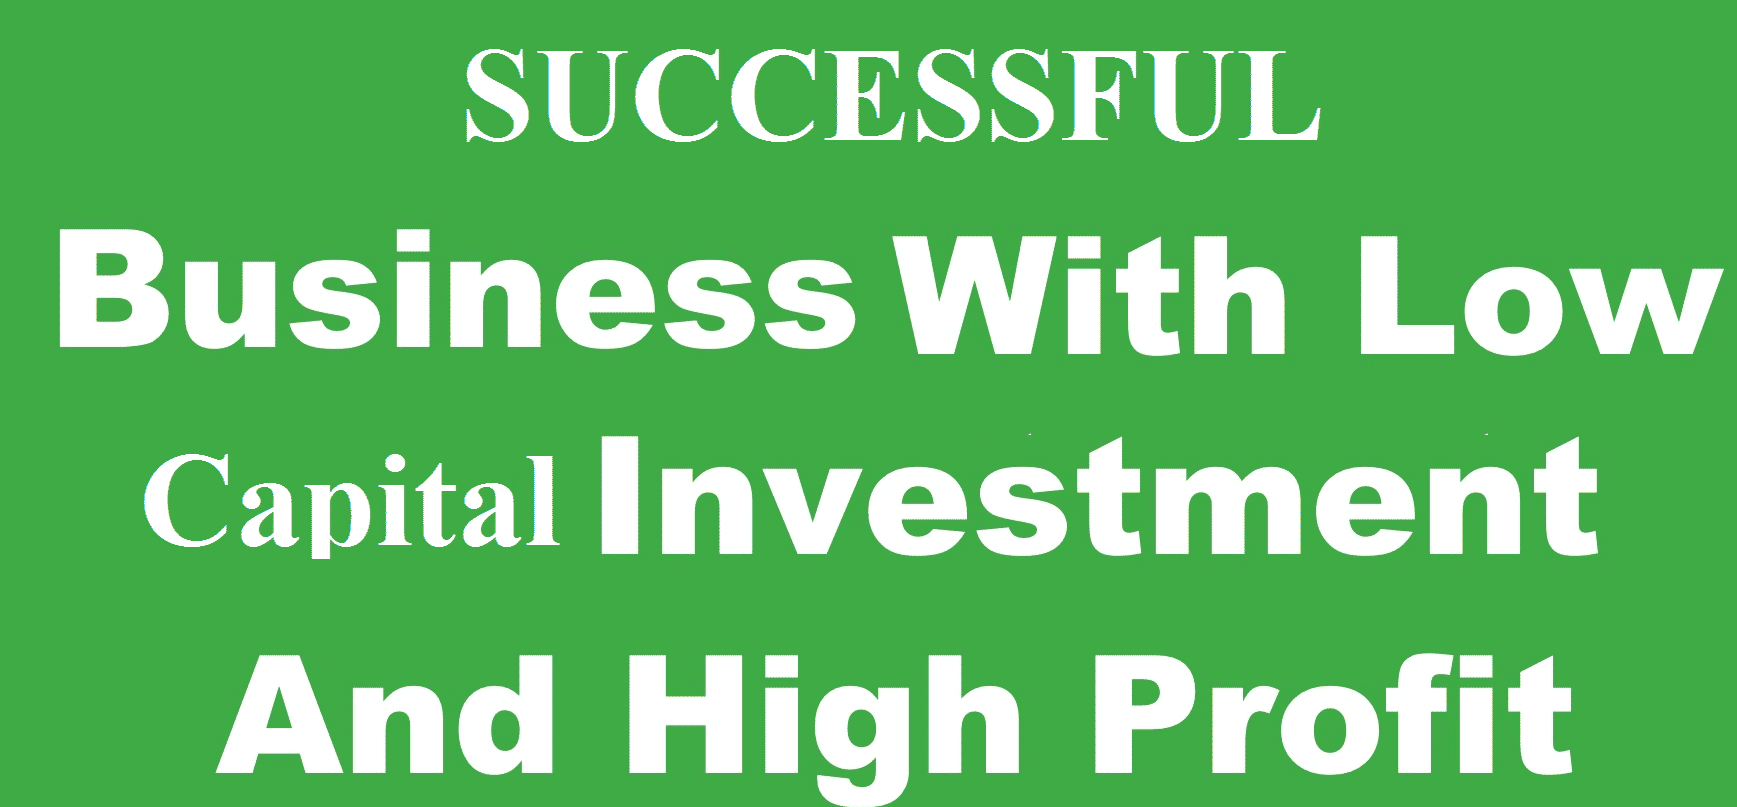 Most successful businesses in Nigeria with low capital